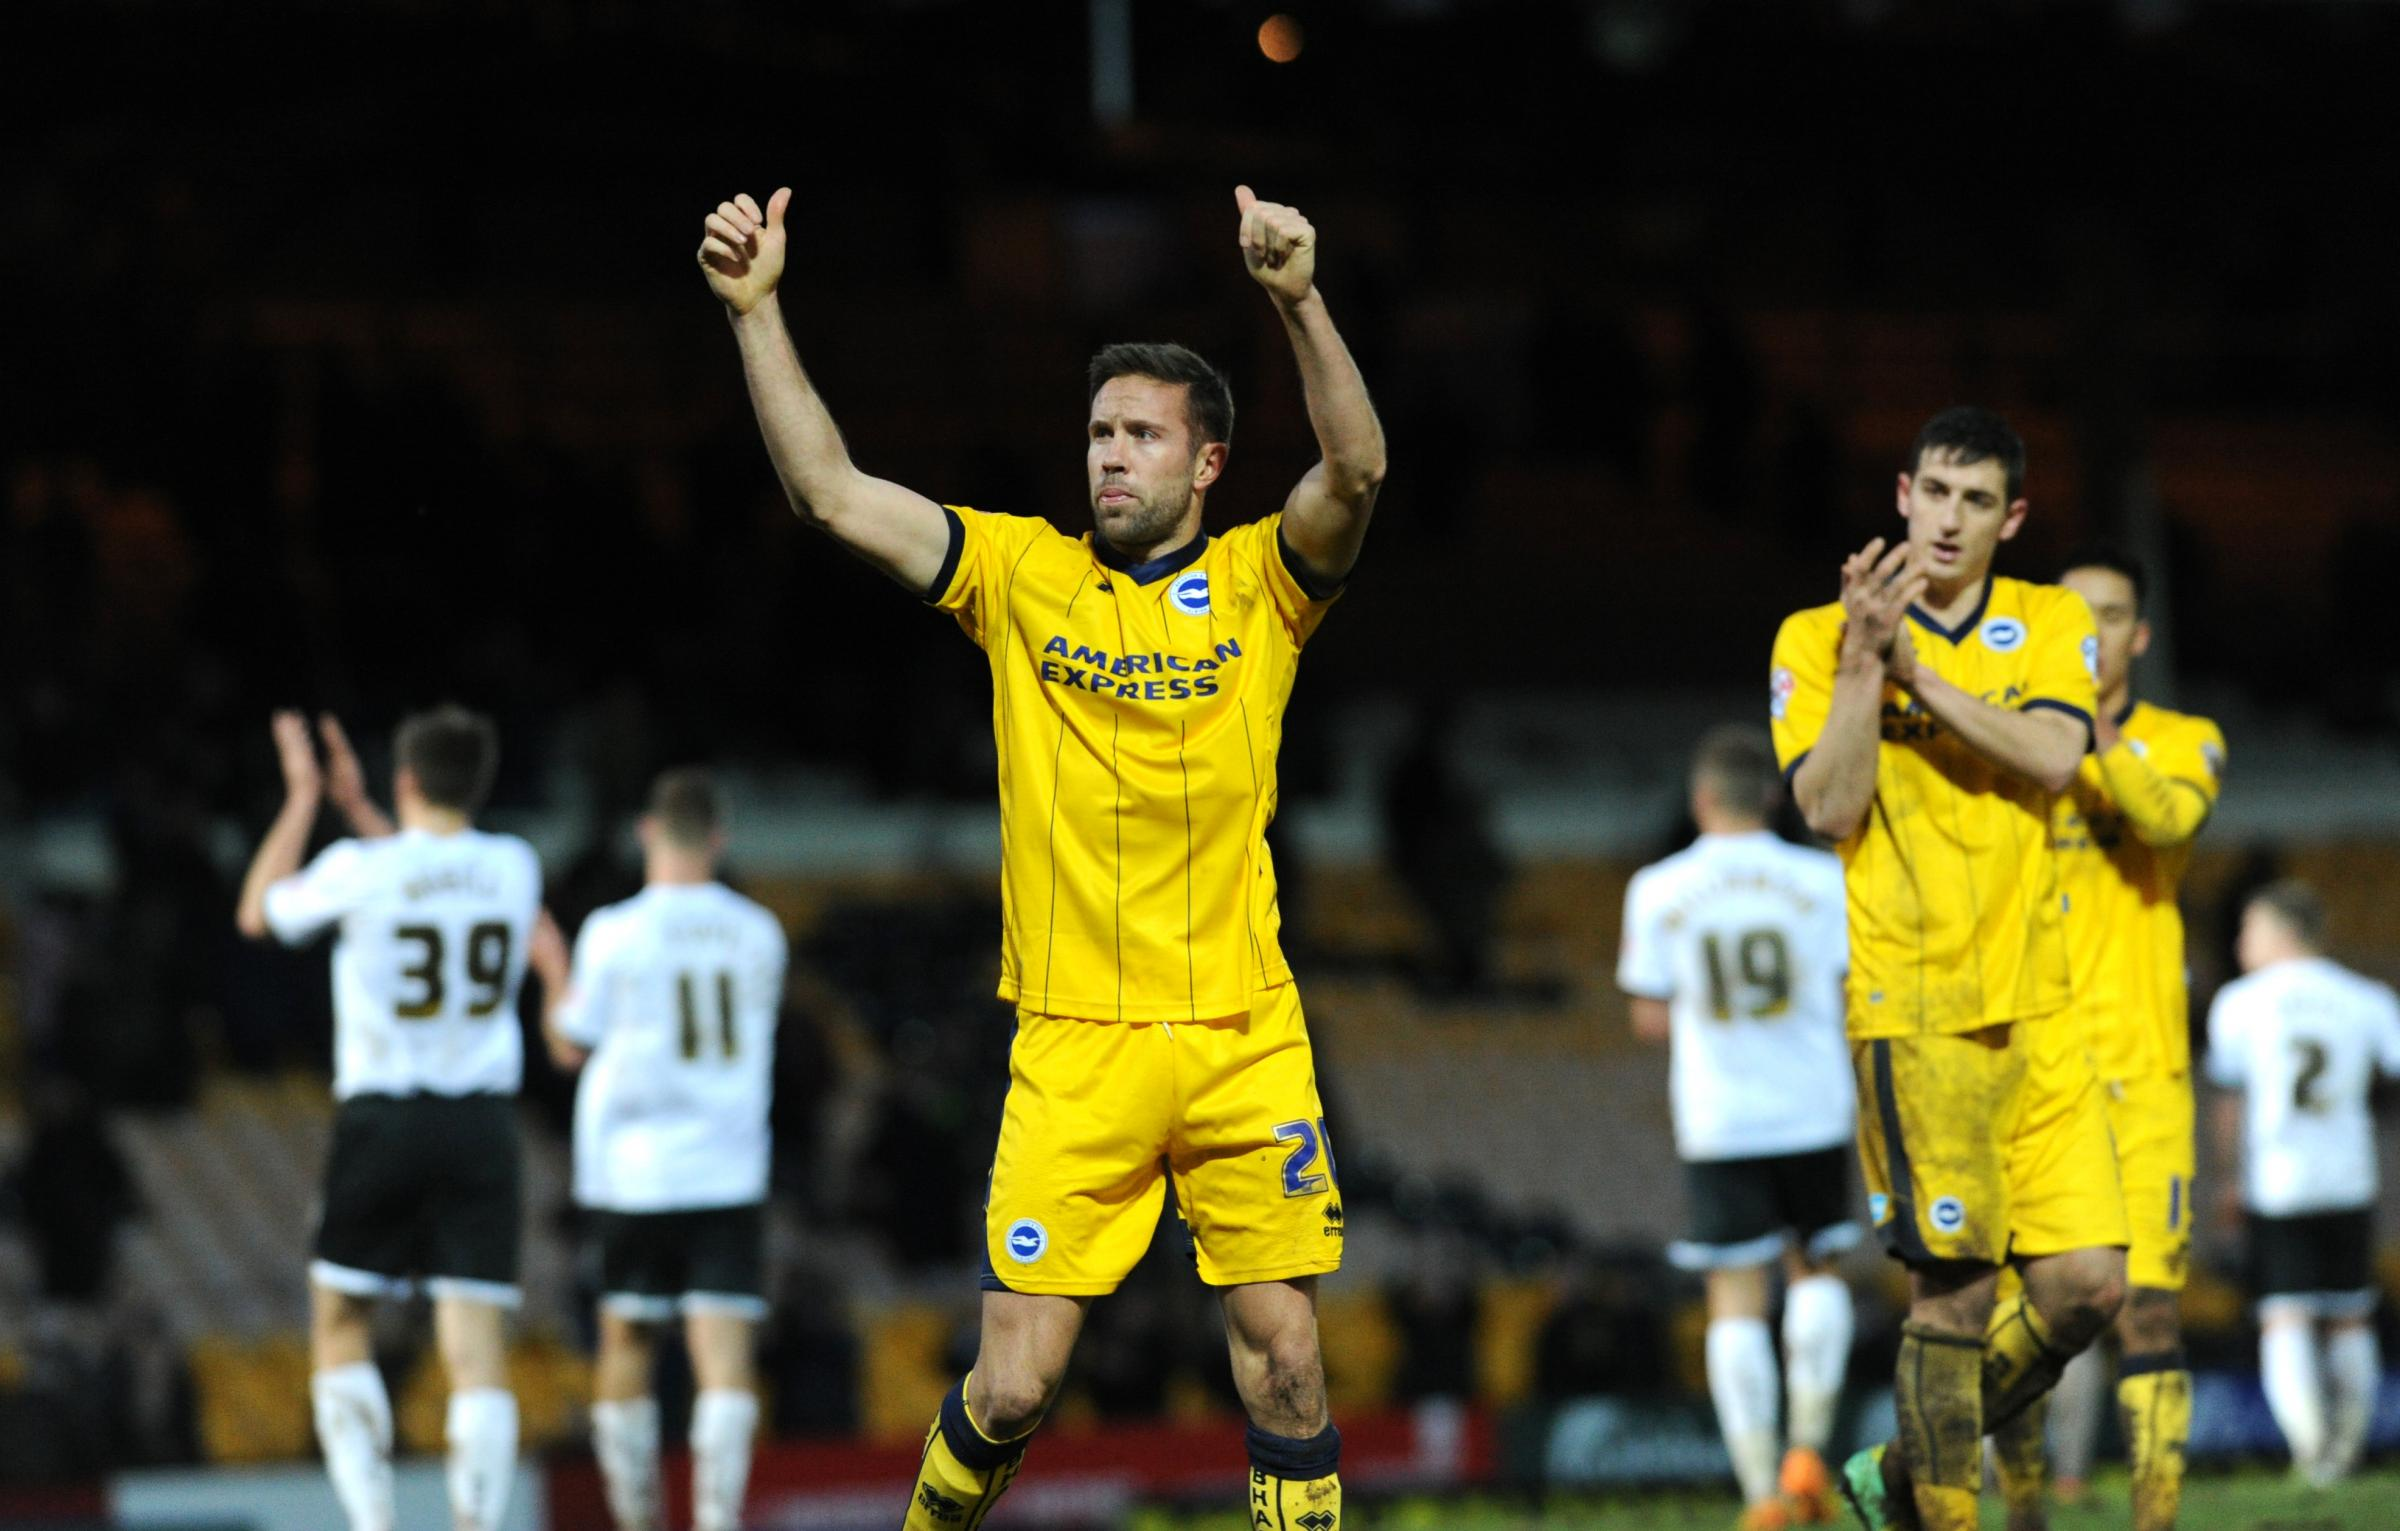 Matt Upson celebrates after Albion's win at Port Vale on Saturday